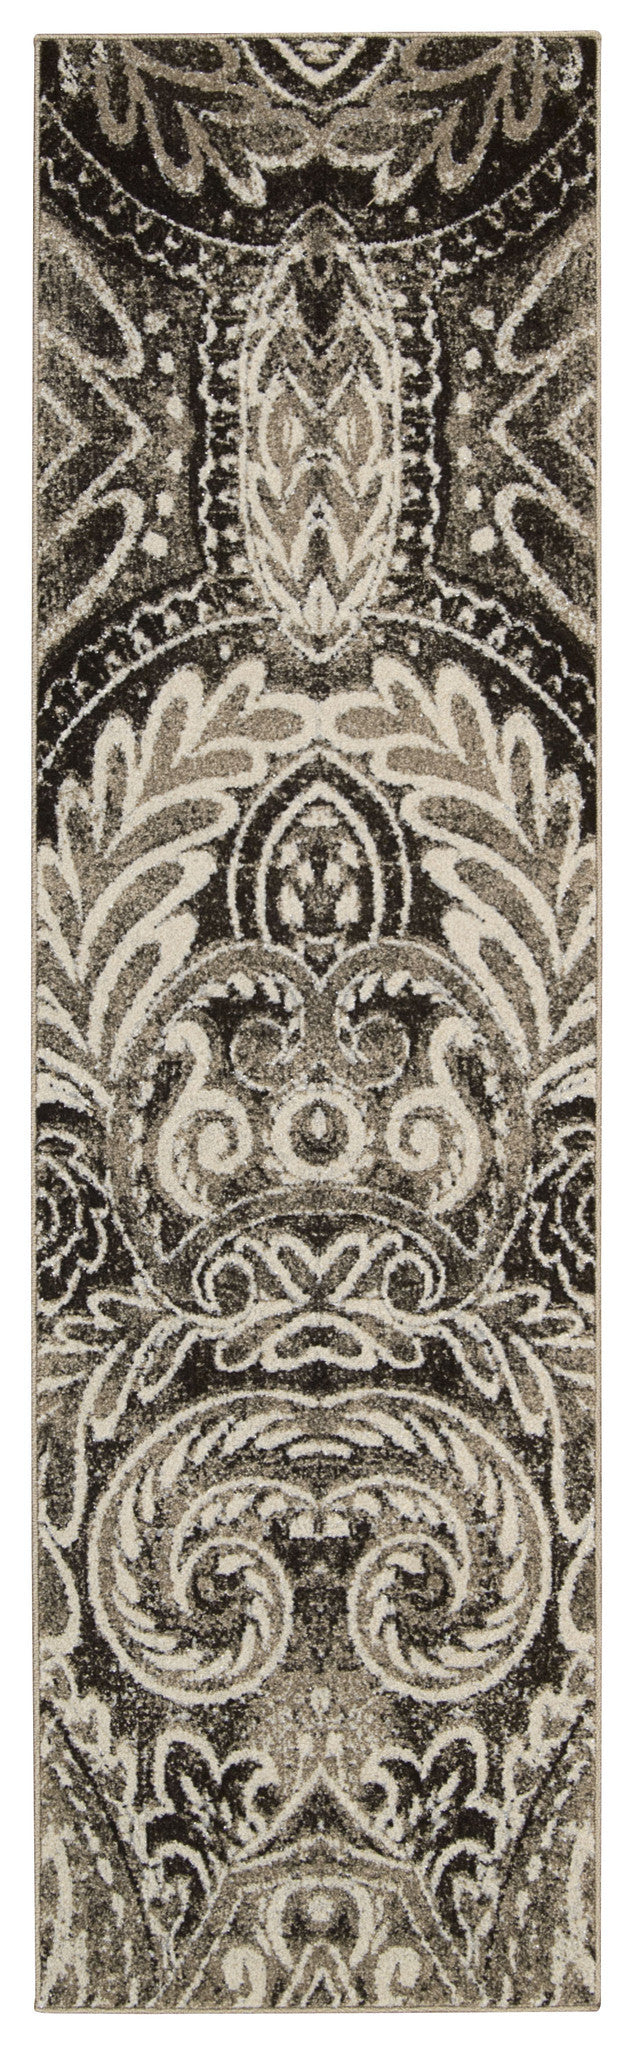 Michael Amini Glistening Nights Light Grey Area Rug By Nourison MA501 LGY